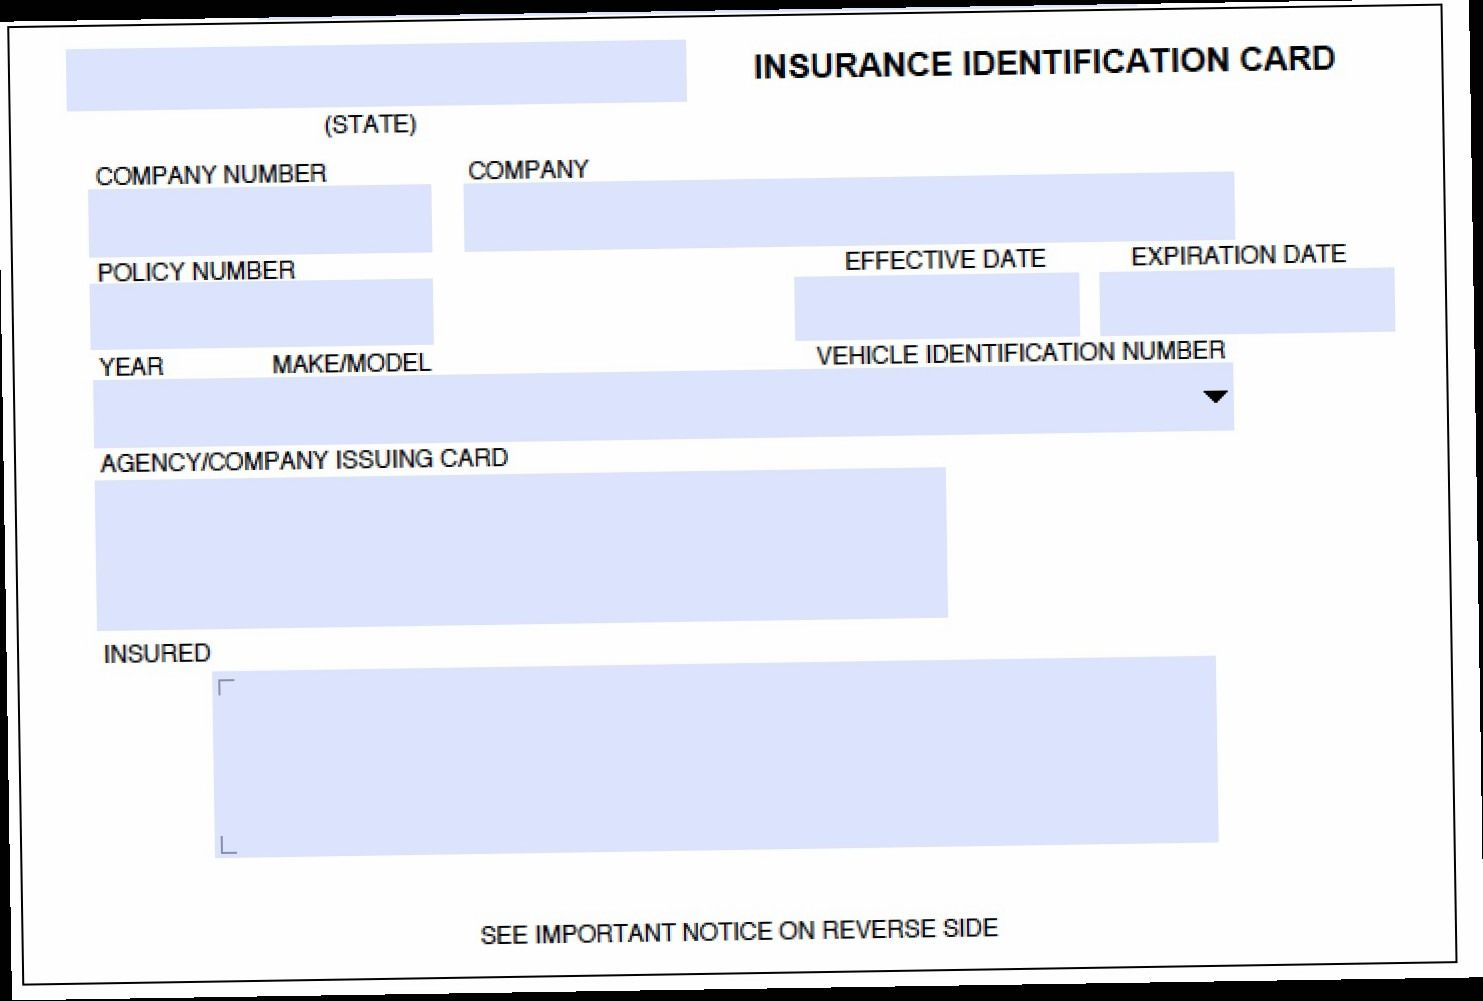 Proof Of Insurance Card Template What Will Proof Of With Proof Of